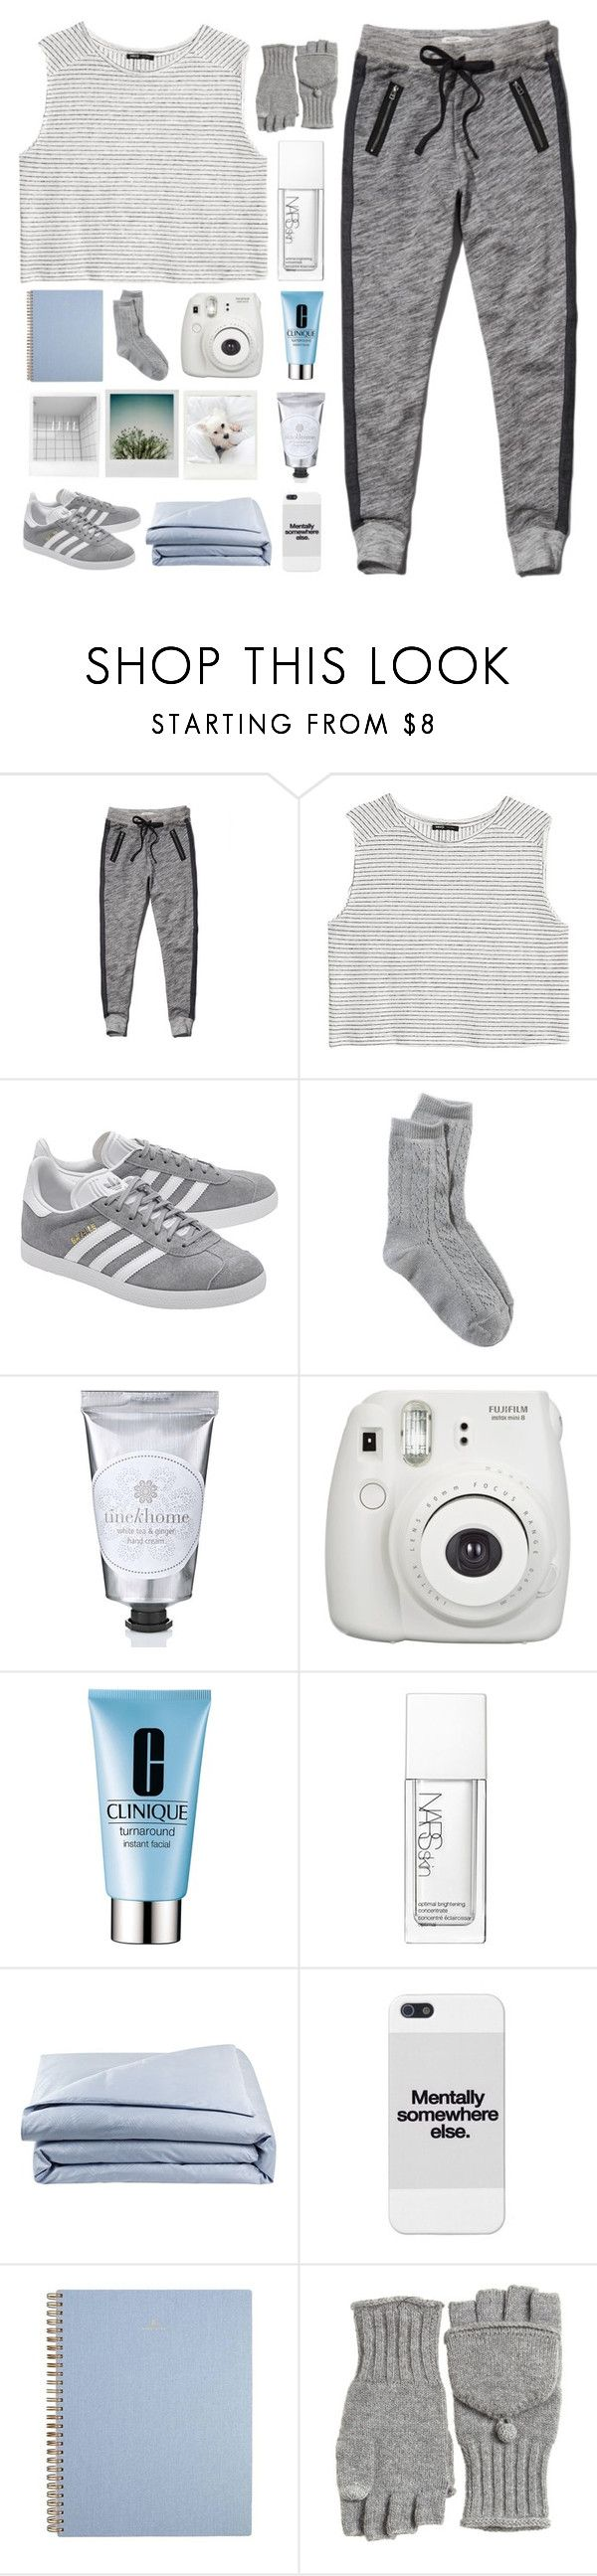 """it's a sign of the times"" by midnight-glow ❤ liked on Polyvore featuring Abercrombie & Fitch, MANGO, adidas Originals, American Eagle Outfitters, 7 For All Mankind, Fujifilm, Clinique, NARS Cosmetics, Frette and Calypso St. Barth"